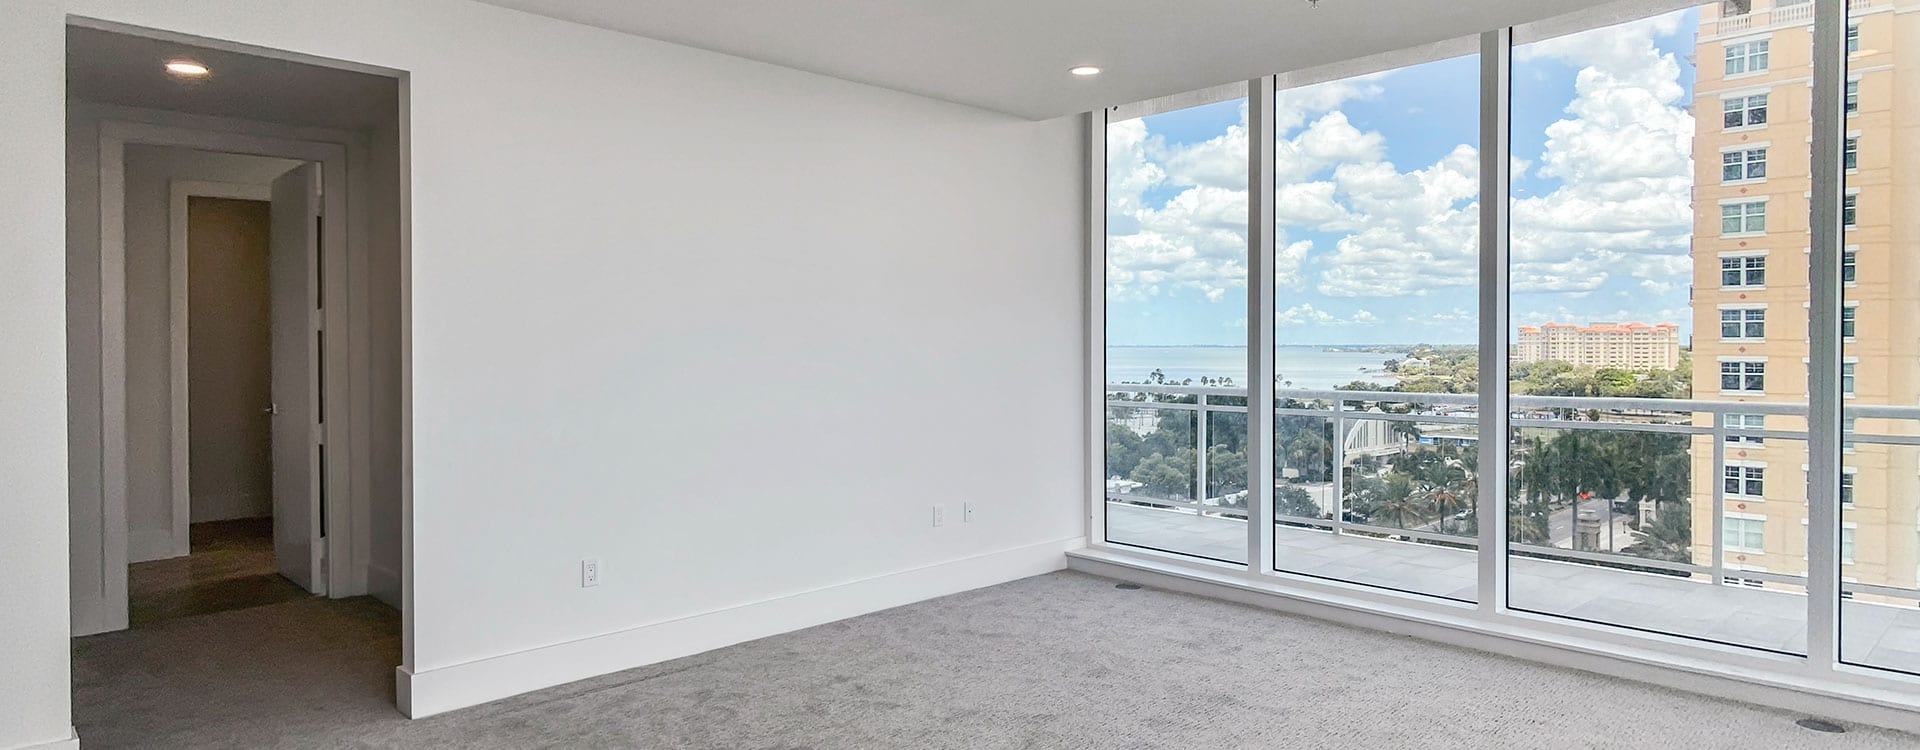 BLVD Sarasota Residence 901 Bedroom with a view